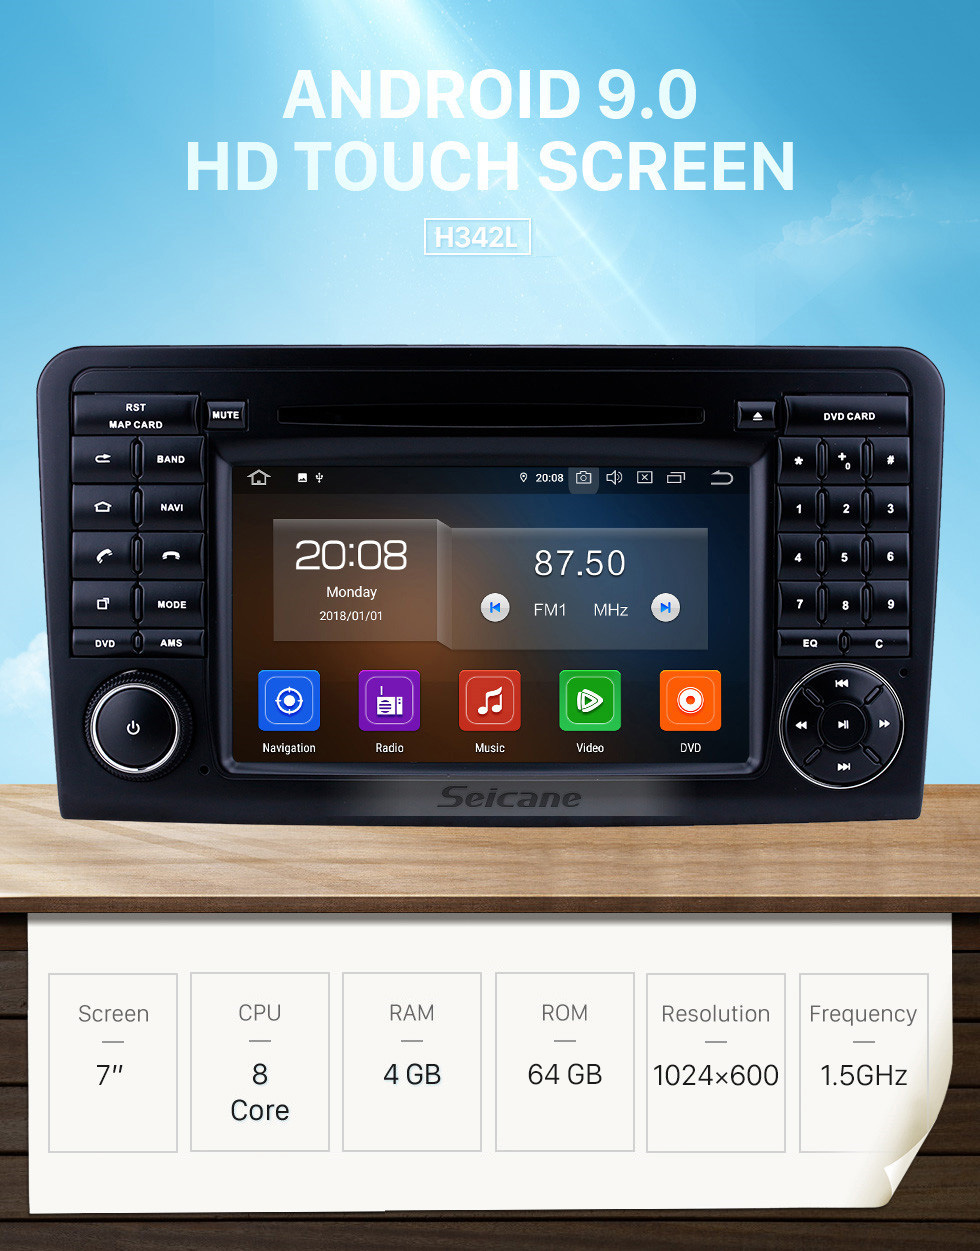 Seicane HD Touchscreen 7 inch Android 9.0 GPS Navigation Radio for 2005-2012 Mercedes Benz ML CLASS W164 ML350 ML430 ML450 ML500 with Carplay Bluetooth support DAB+